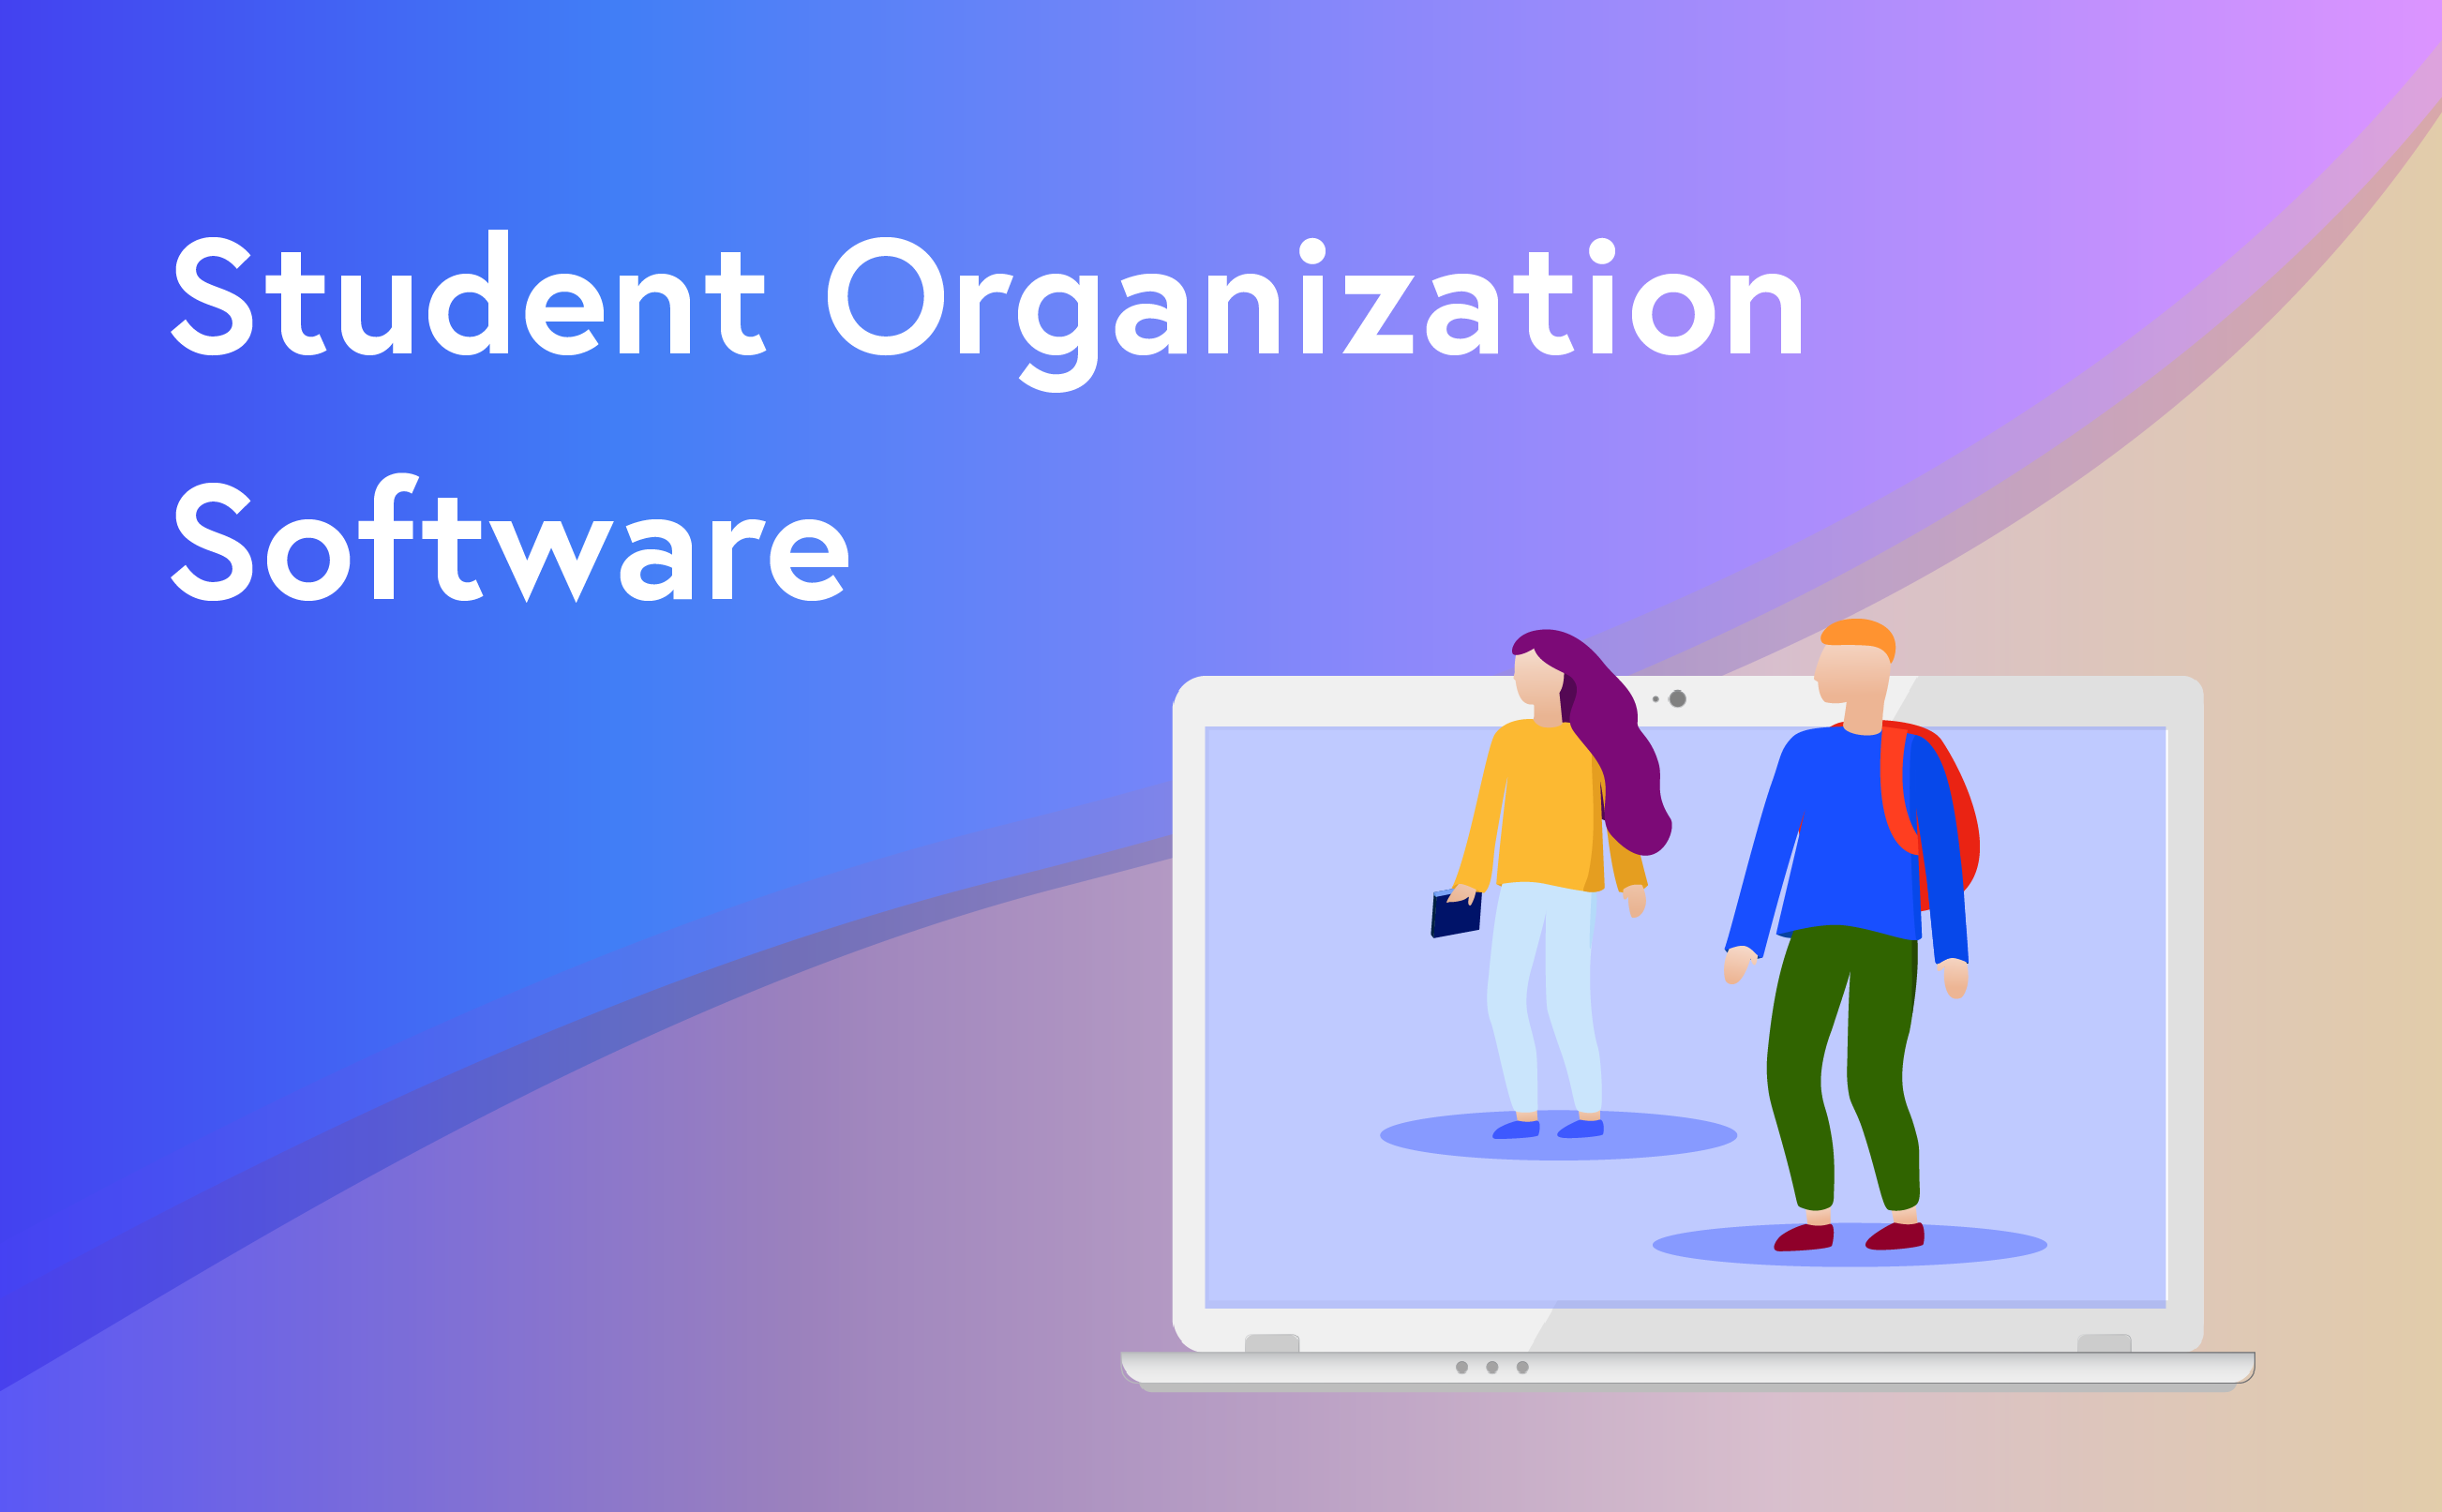 Student Organization Software